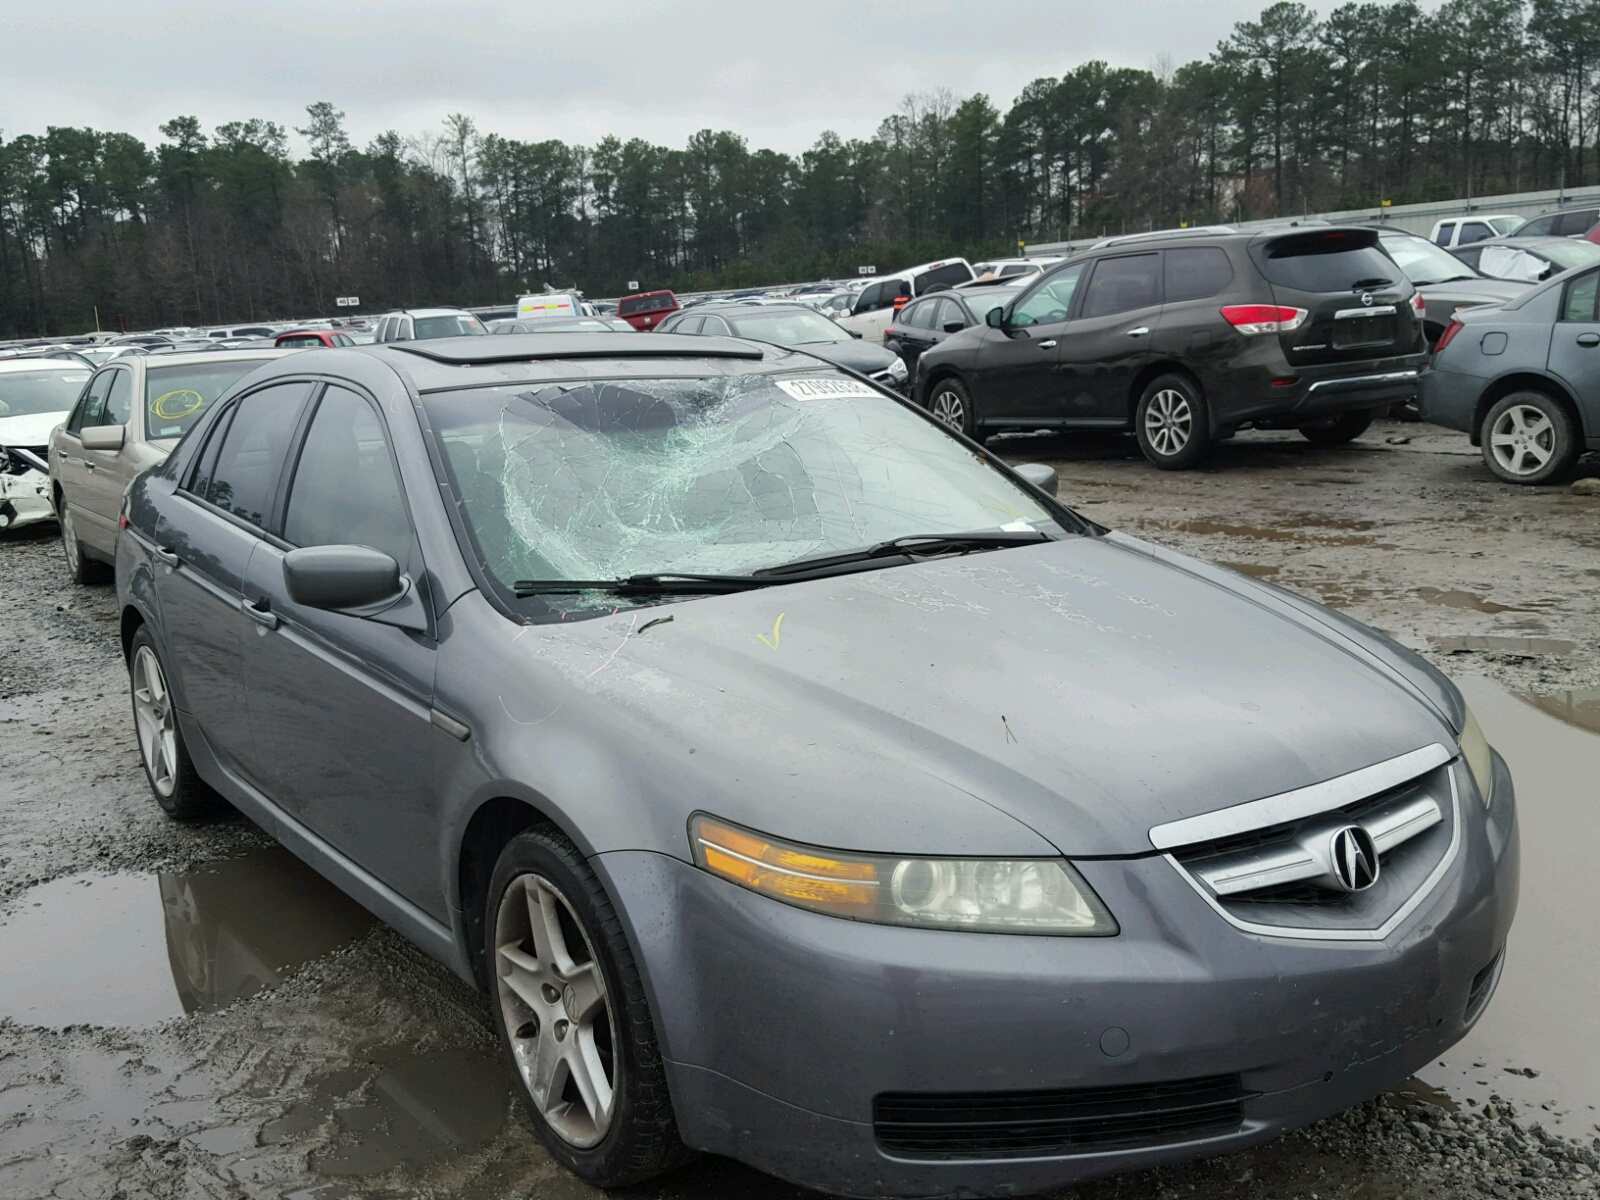 lot west title rebuildable carfinder fl auctions tl of auto in acura cert sale on copart online for view palm left beach slvg black en